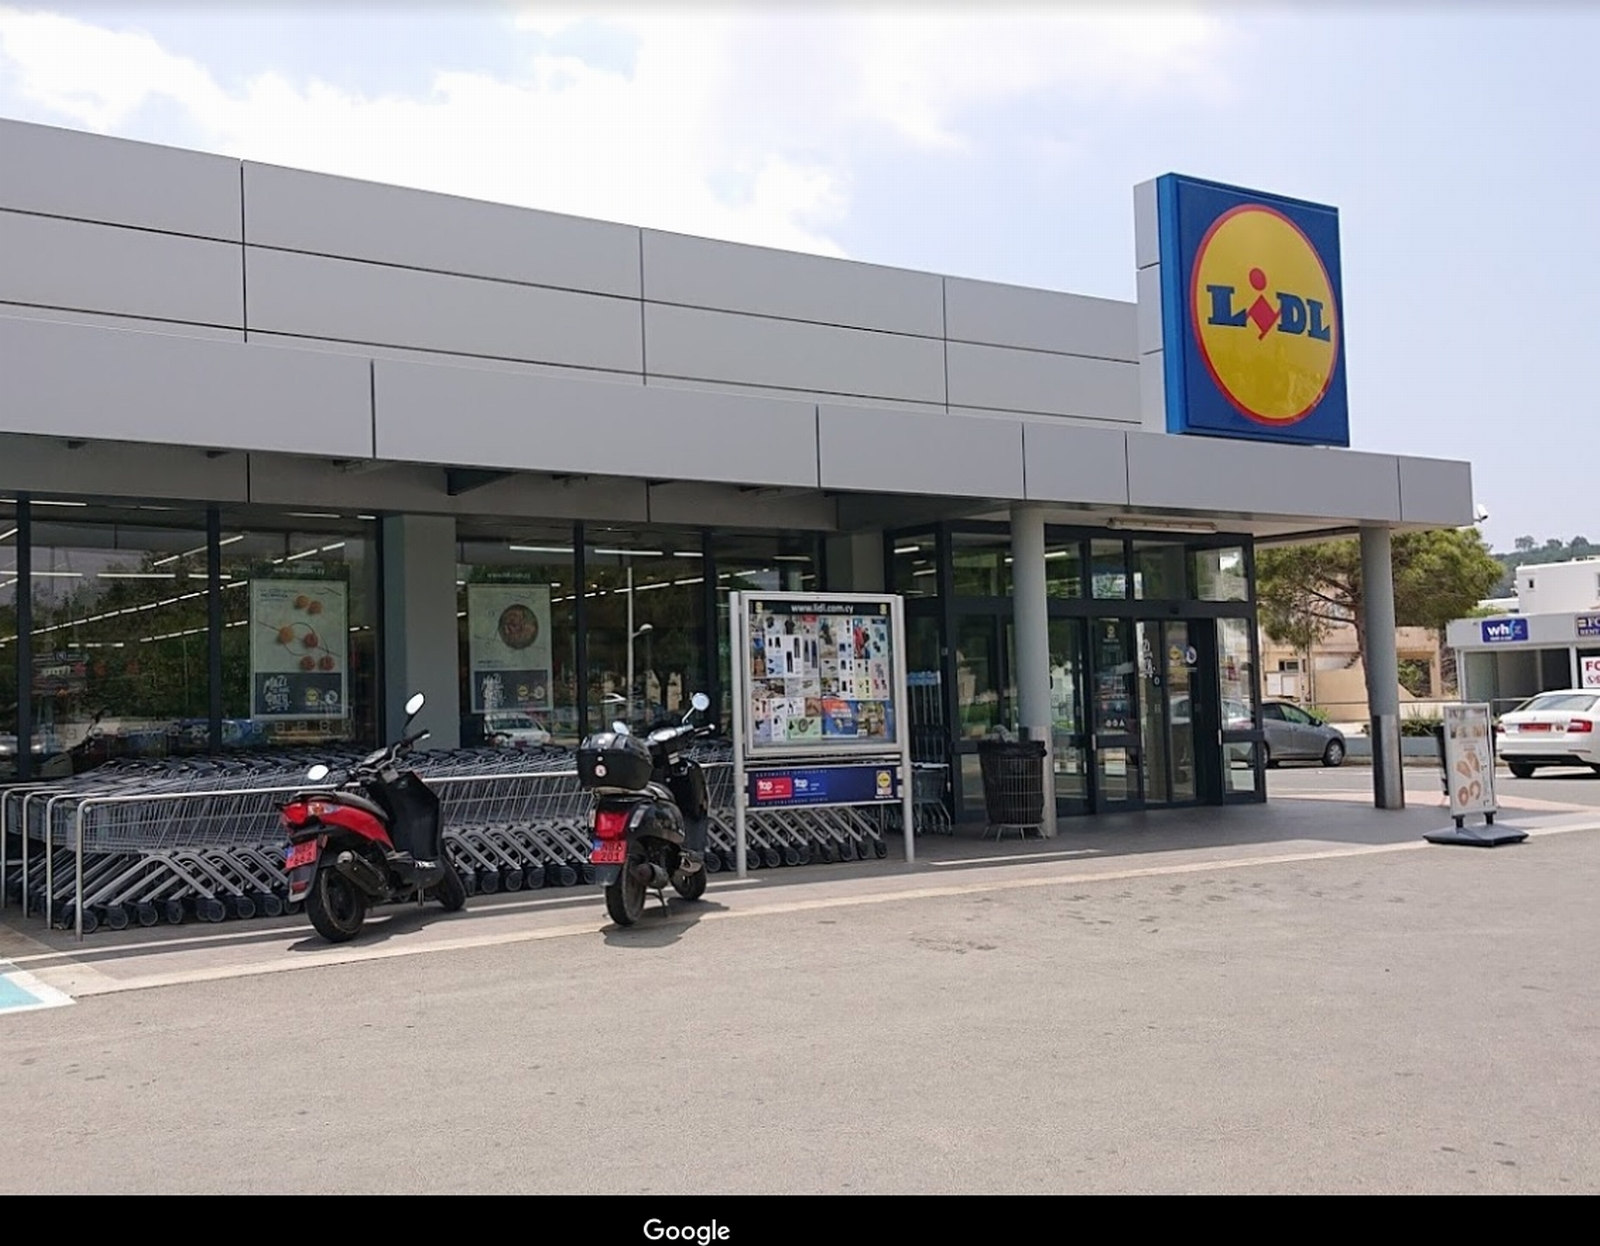 Cyprus. Supermarket Lidl in Protaras center.